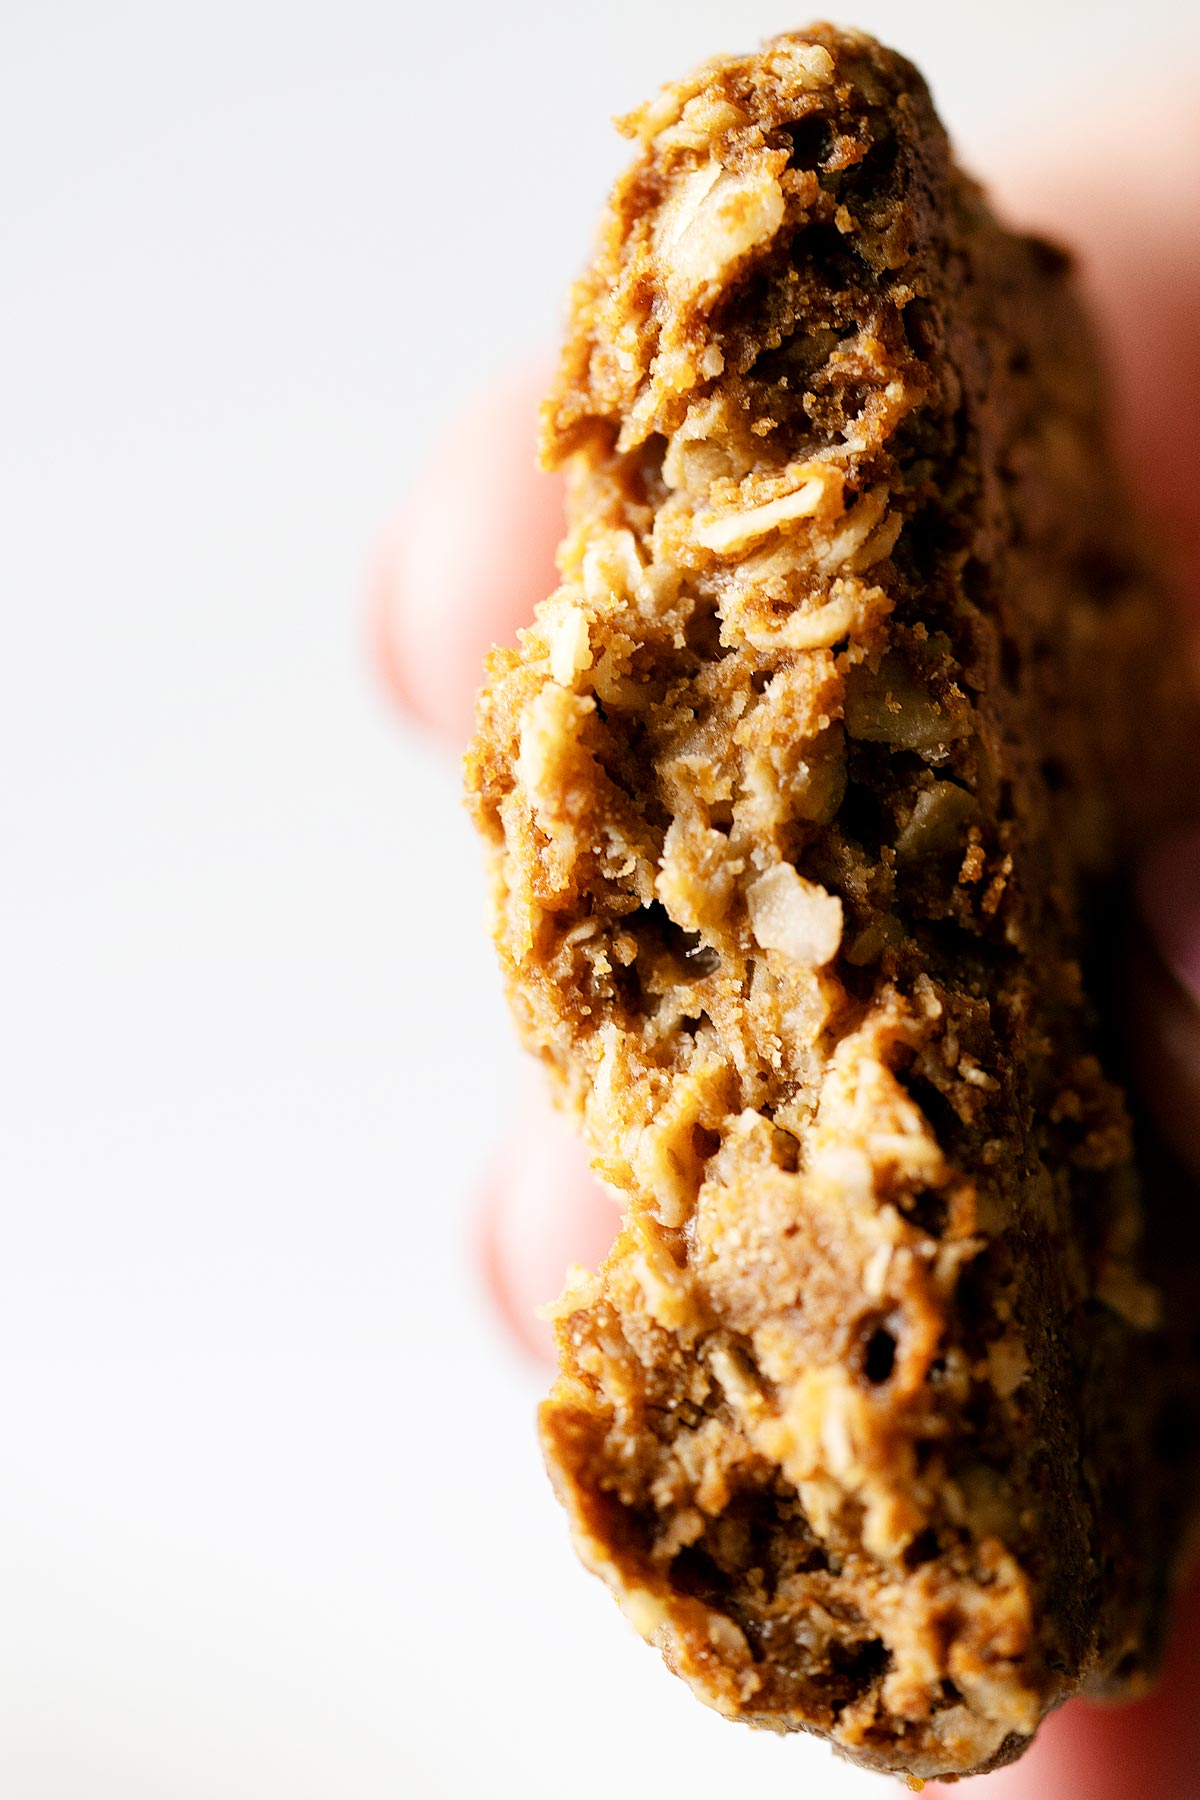 Showing the inside texture of one healthy tahini cookie